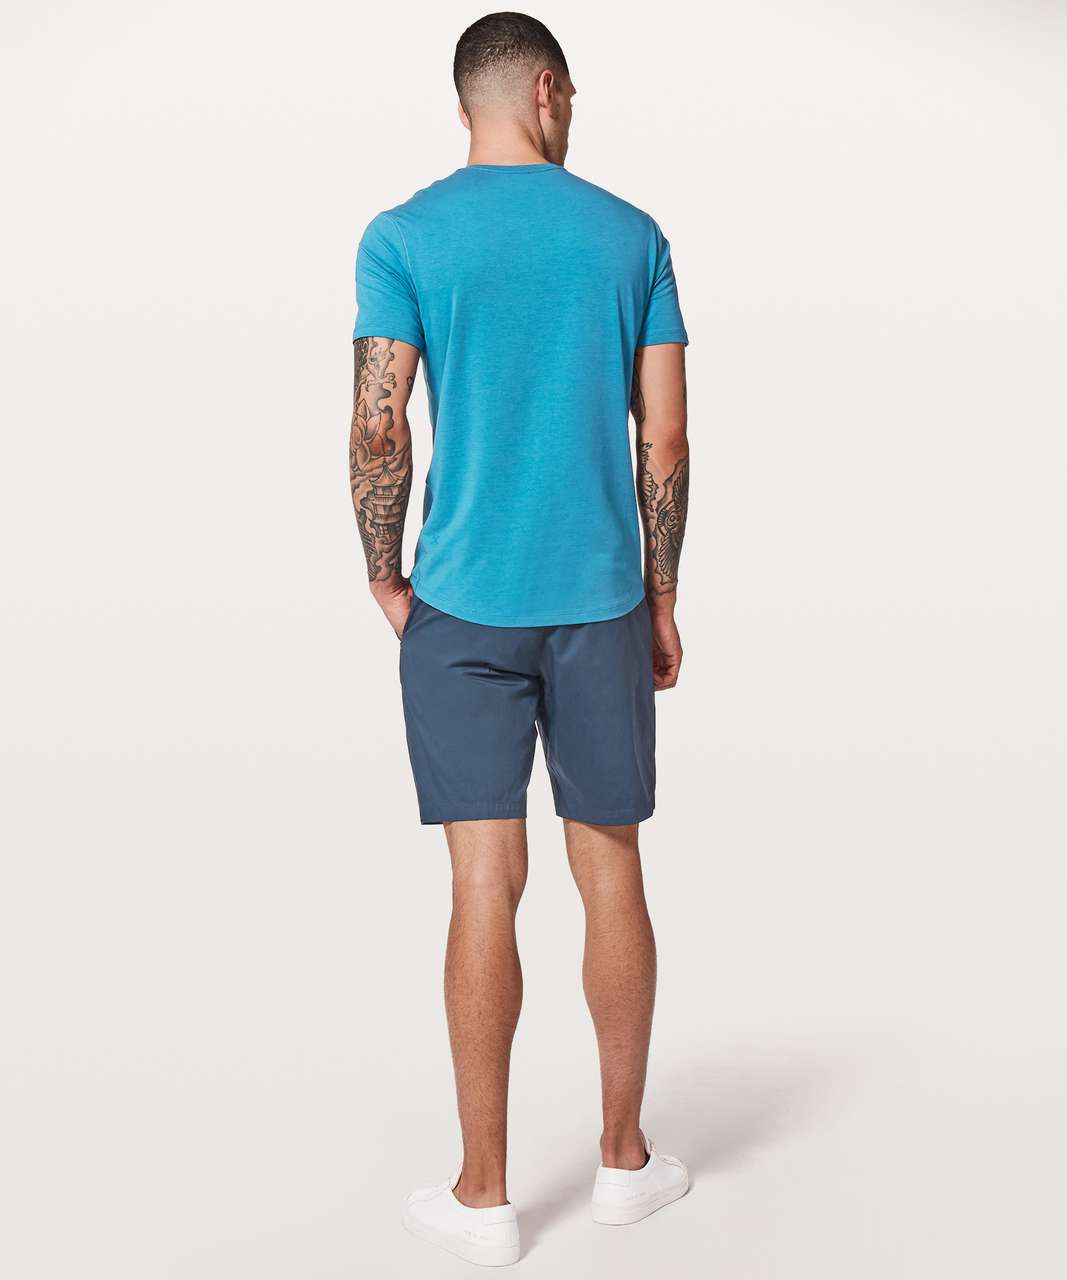 Lululemon 5 Year Basic V *Updated Fit - Pewter Blue